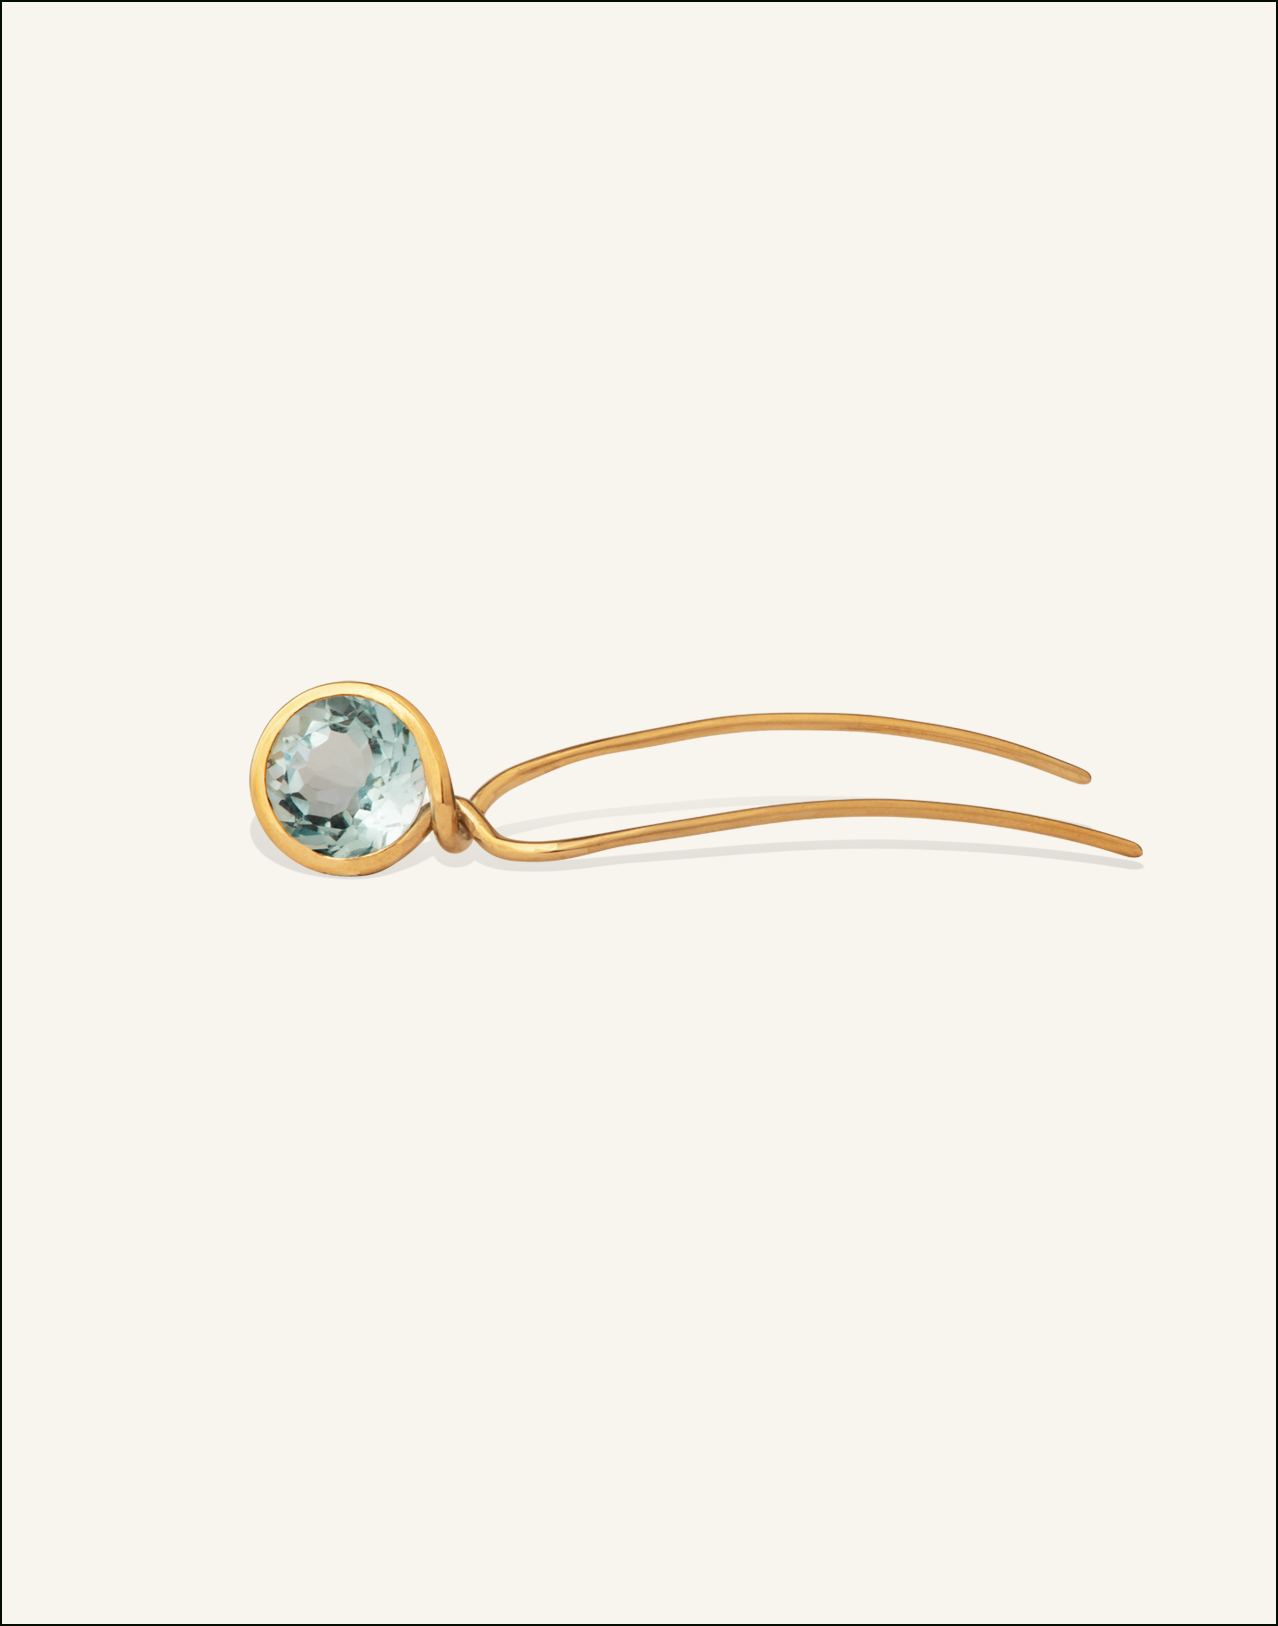 Completedworks-Hair-Pin-Passage-of-the-Divine-Bird-2-1.jpg